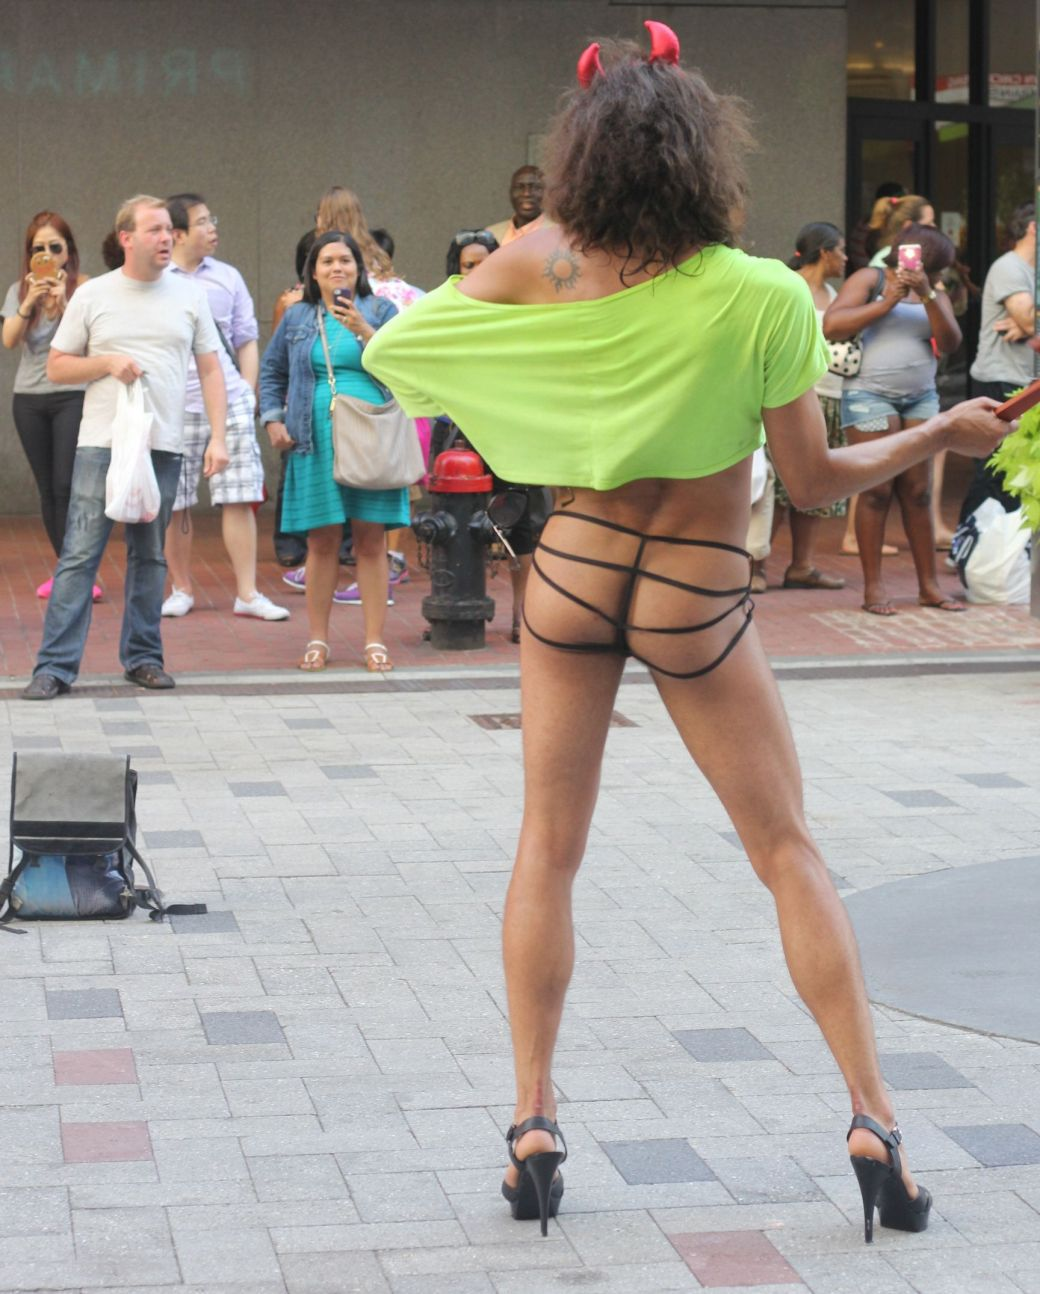 boston downtown crossing man in thong high heels singing dancing in front of macy's 15